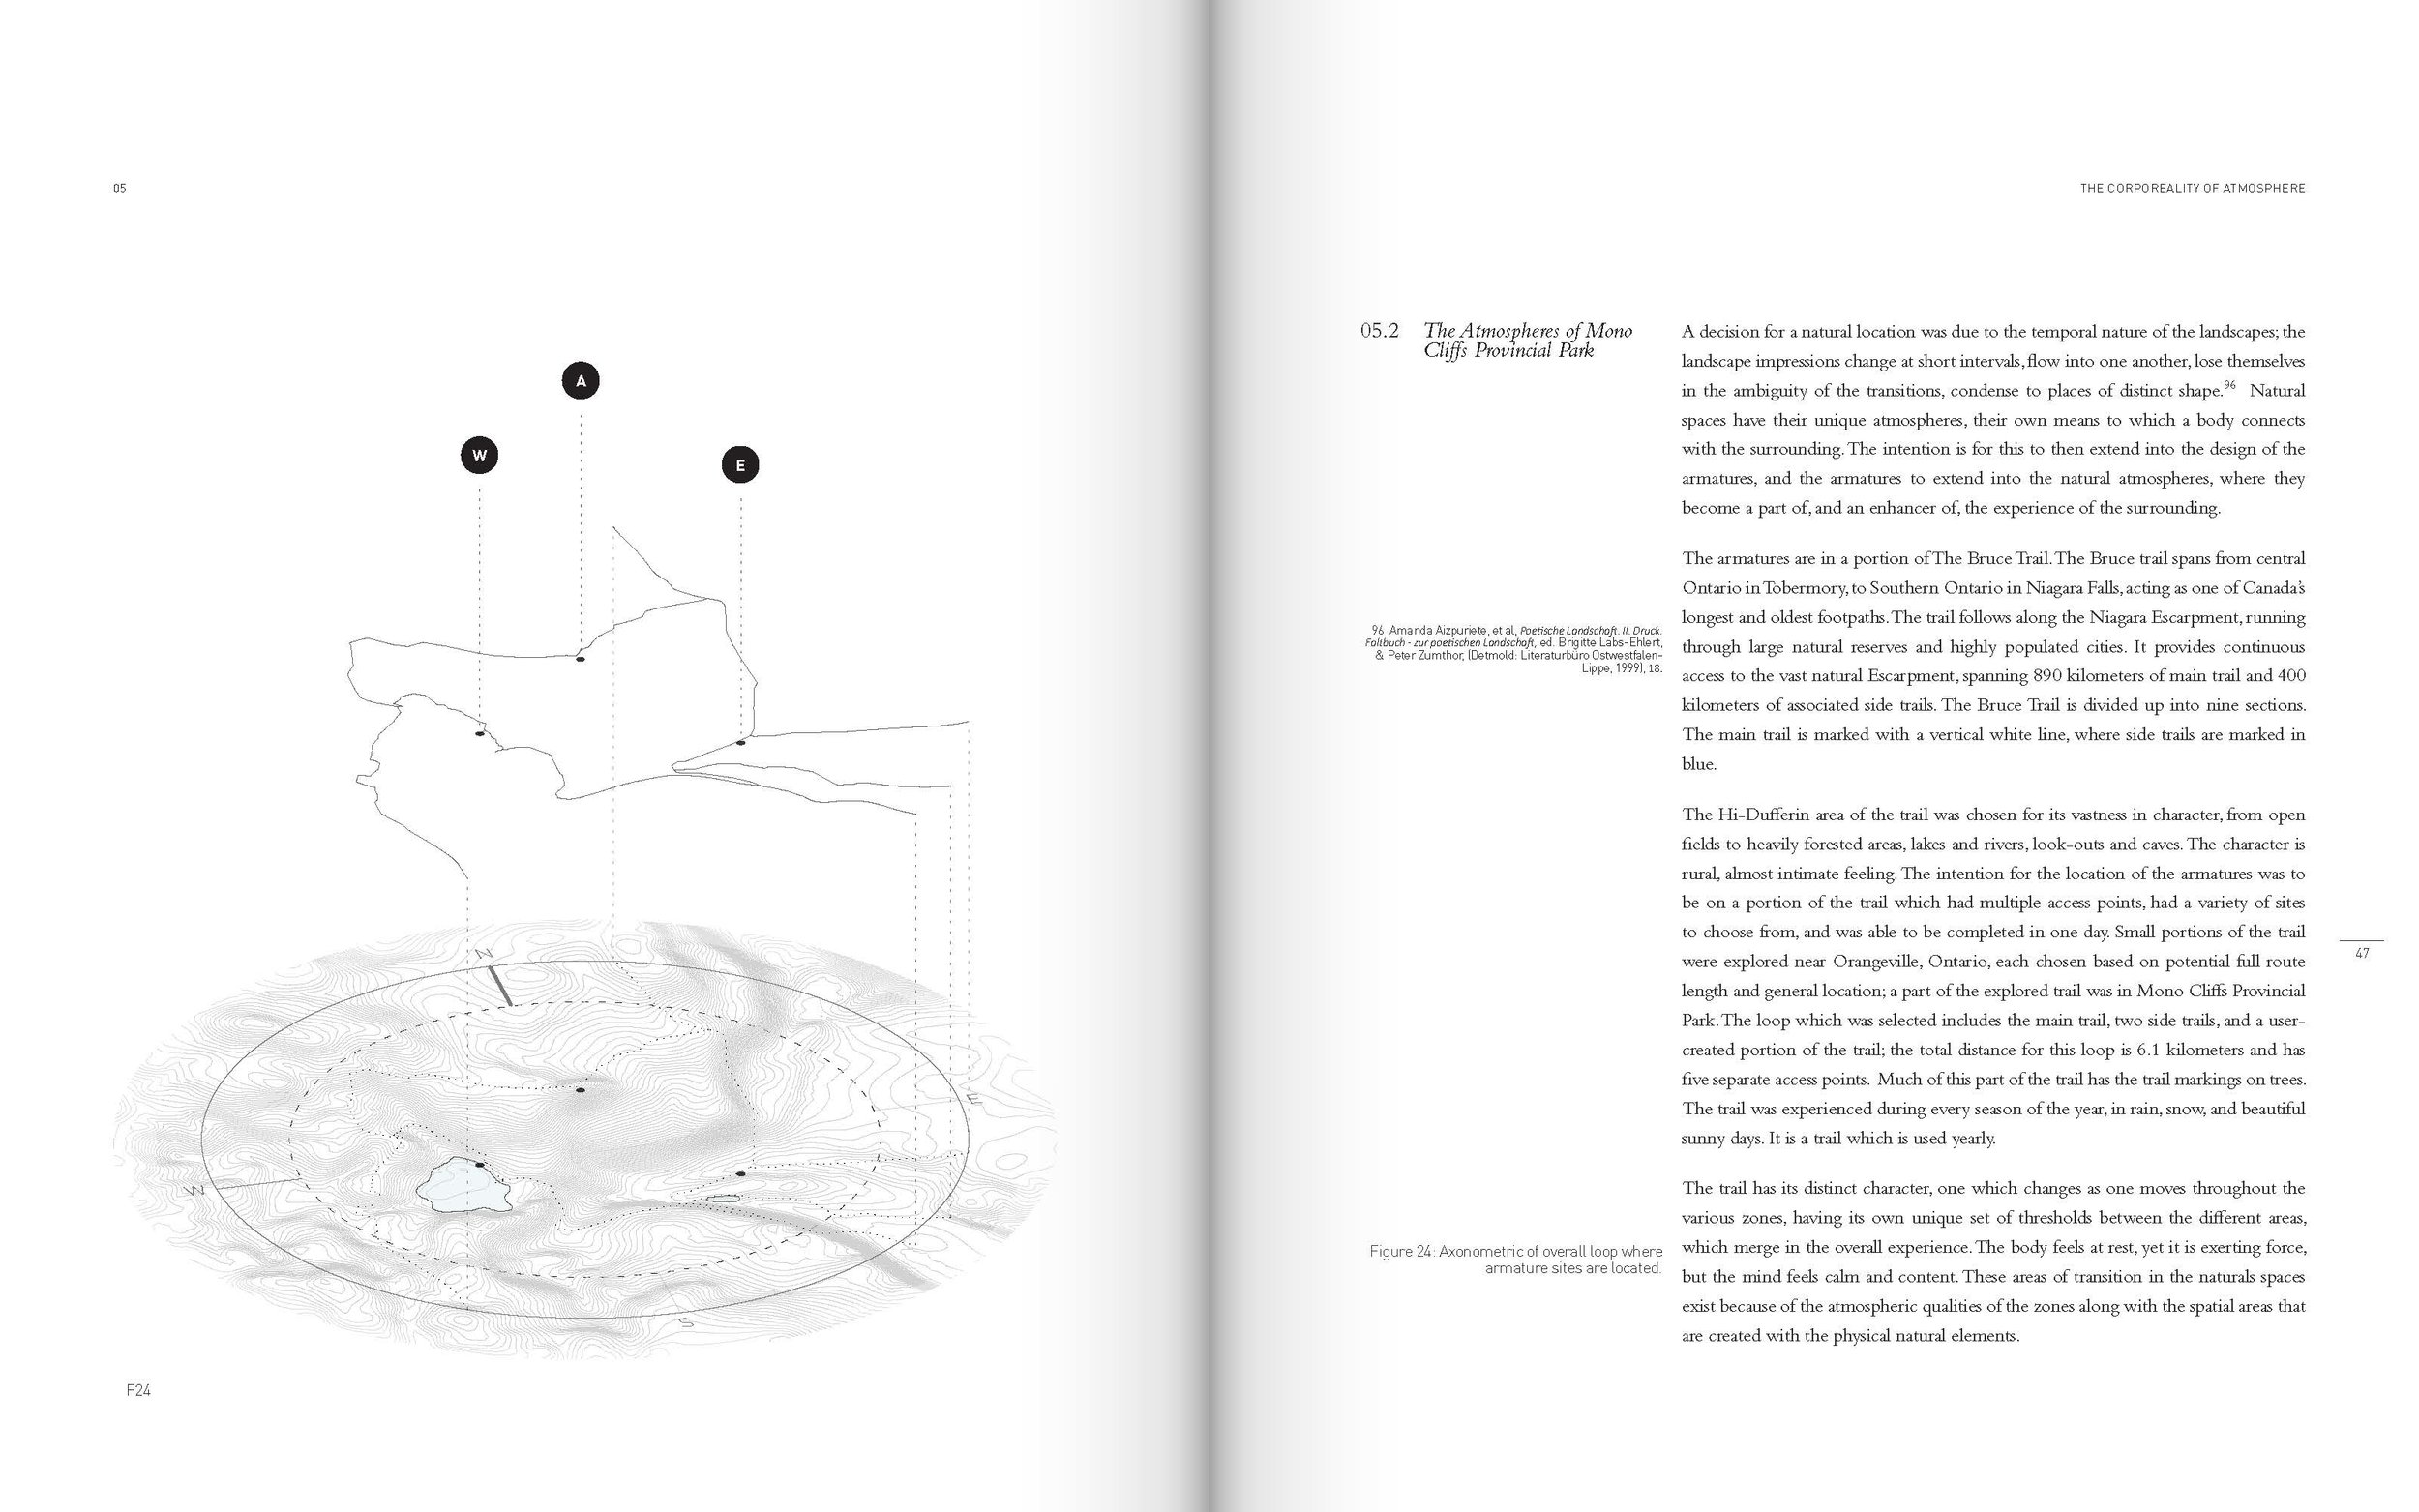 On The Corporeality of Atmosphere_J Walker_Paul Spreads w seam_Page_11.jpg